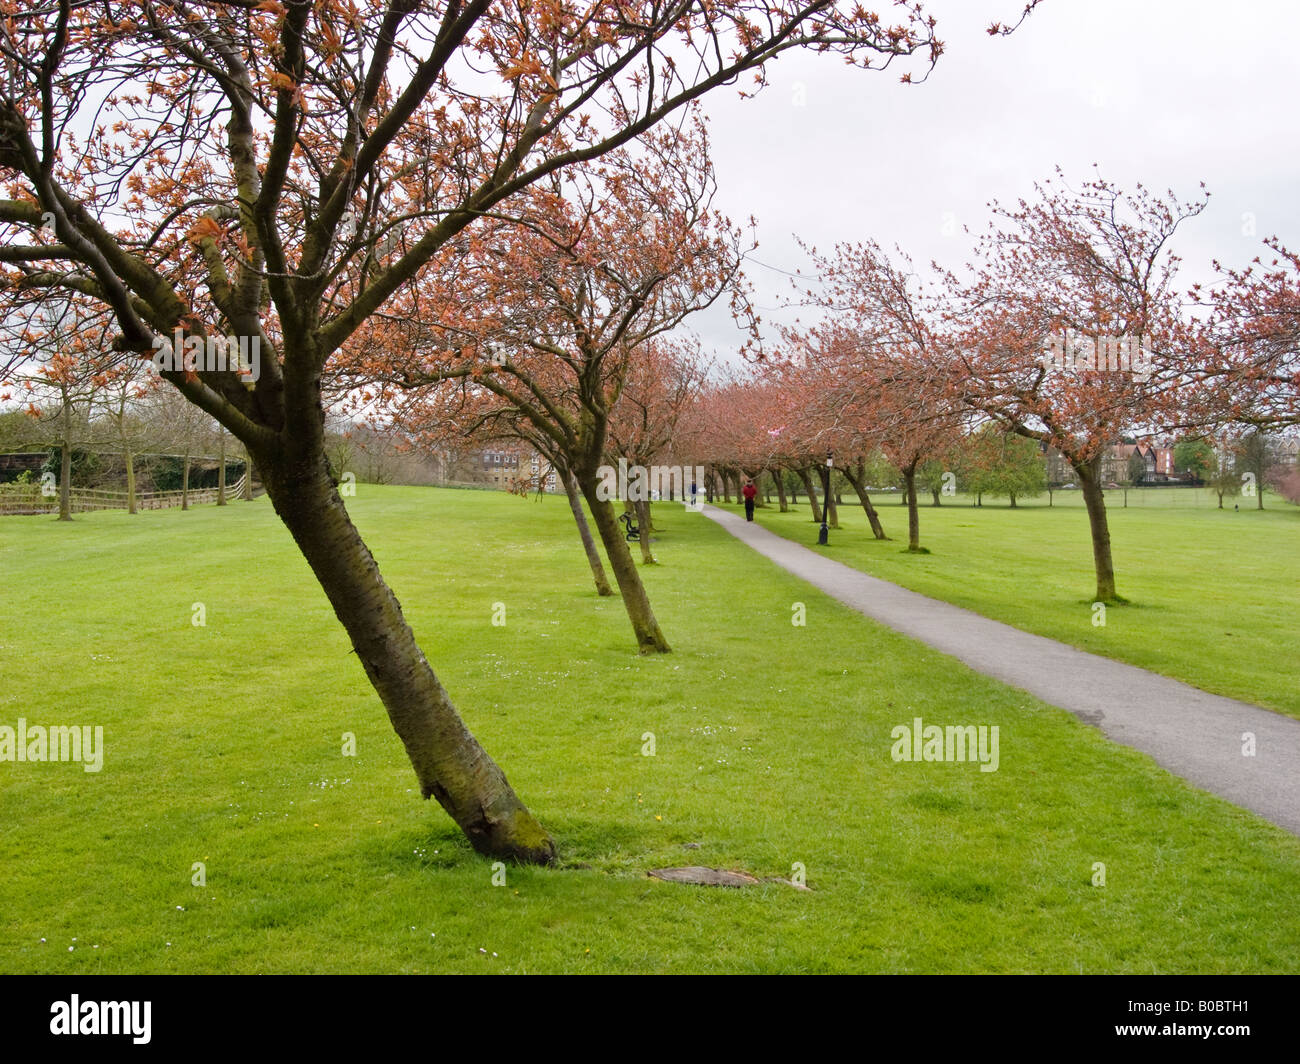 Effect of prevailing winds on an avenue of ornamental trees in Harrogate parkland - Stock Image